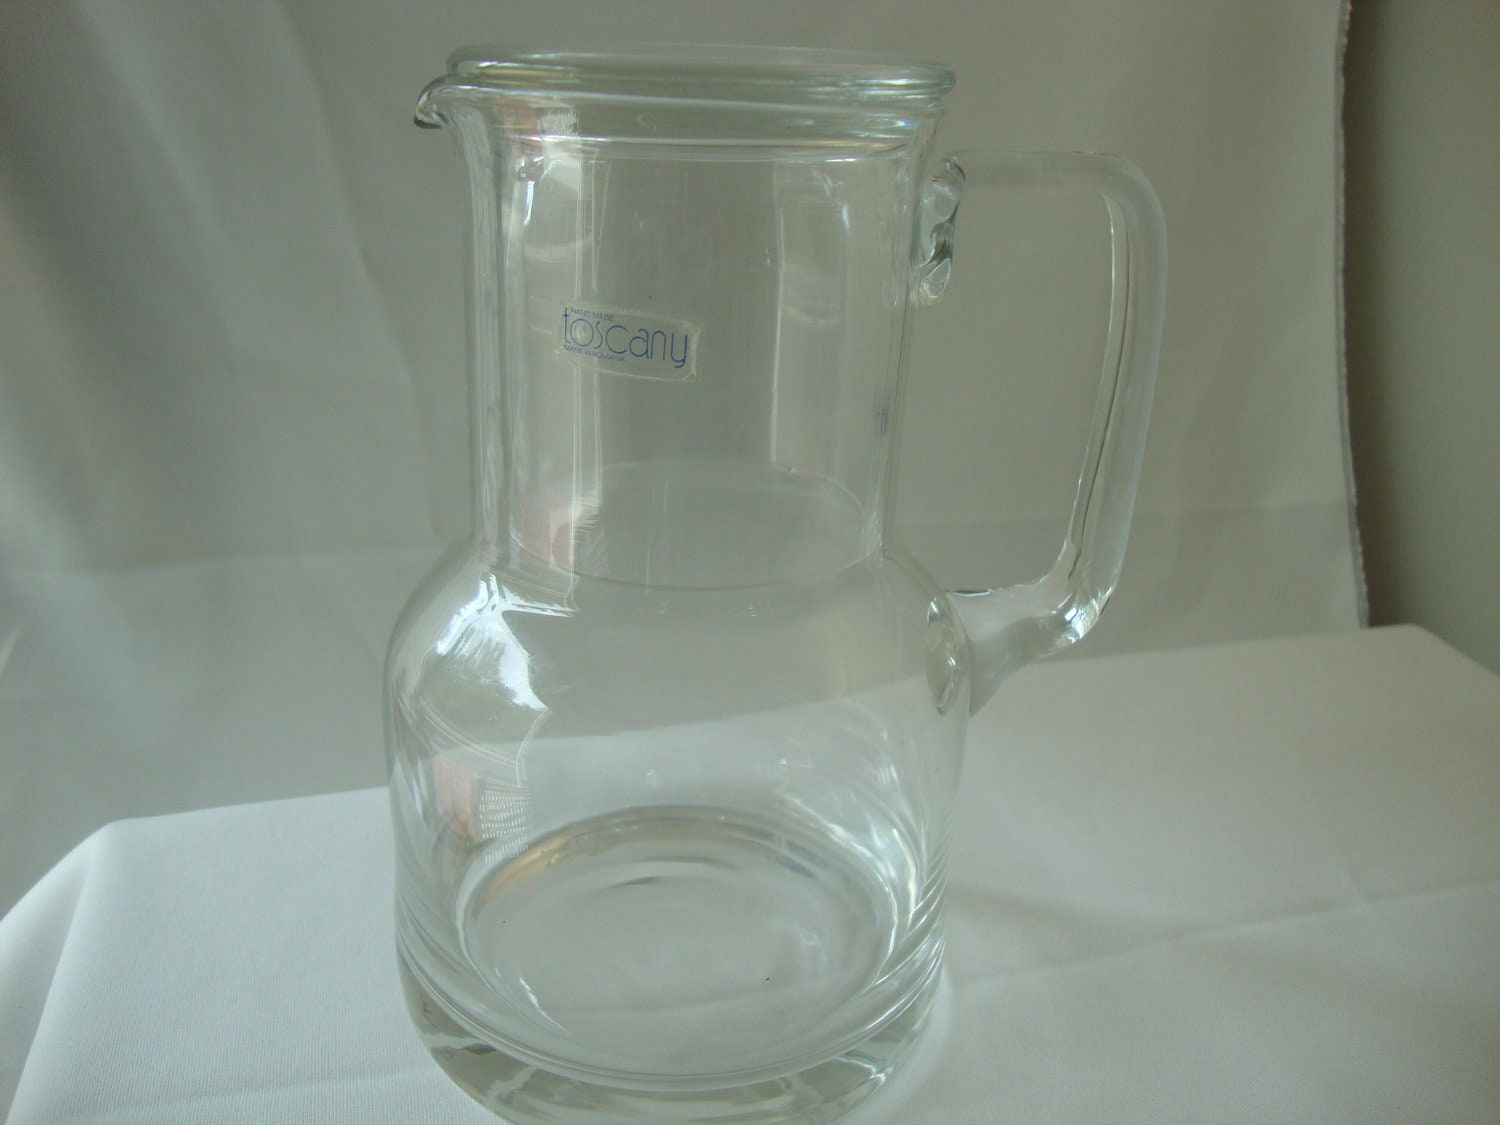 Bedside Water Carafe And Glass Crystal Bedside Water Carafe Or Pitcher Toscany Made In